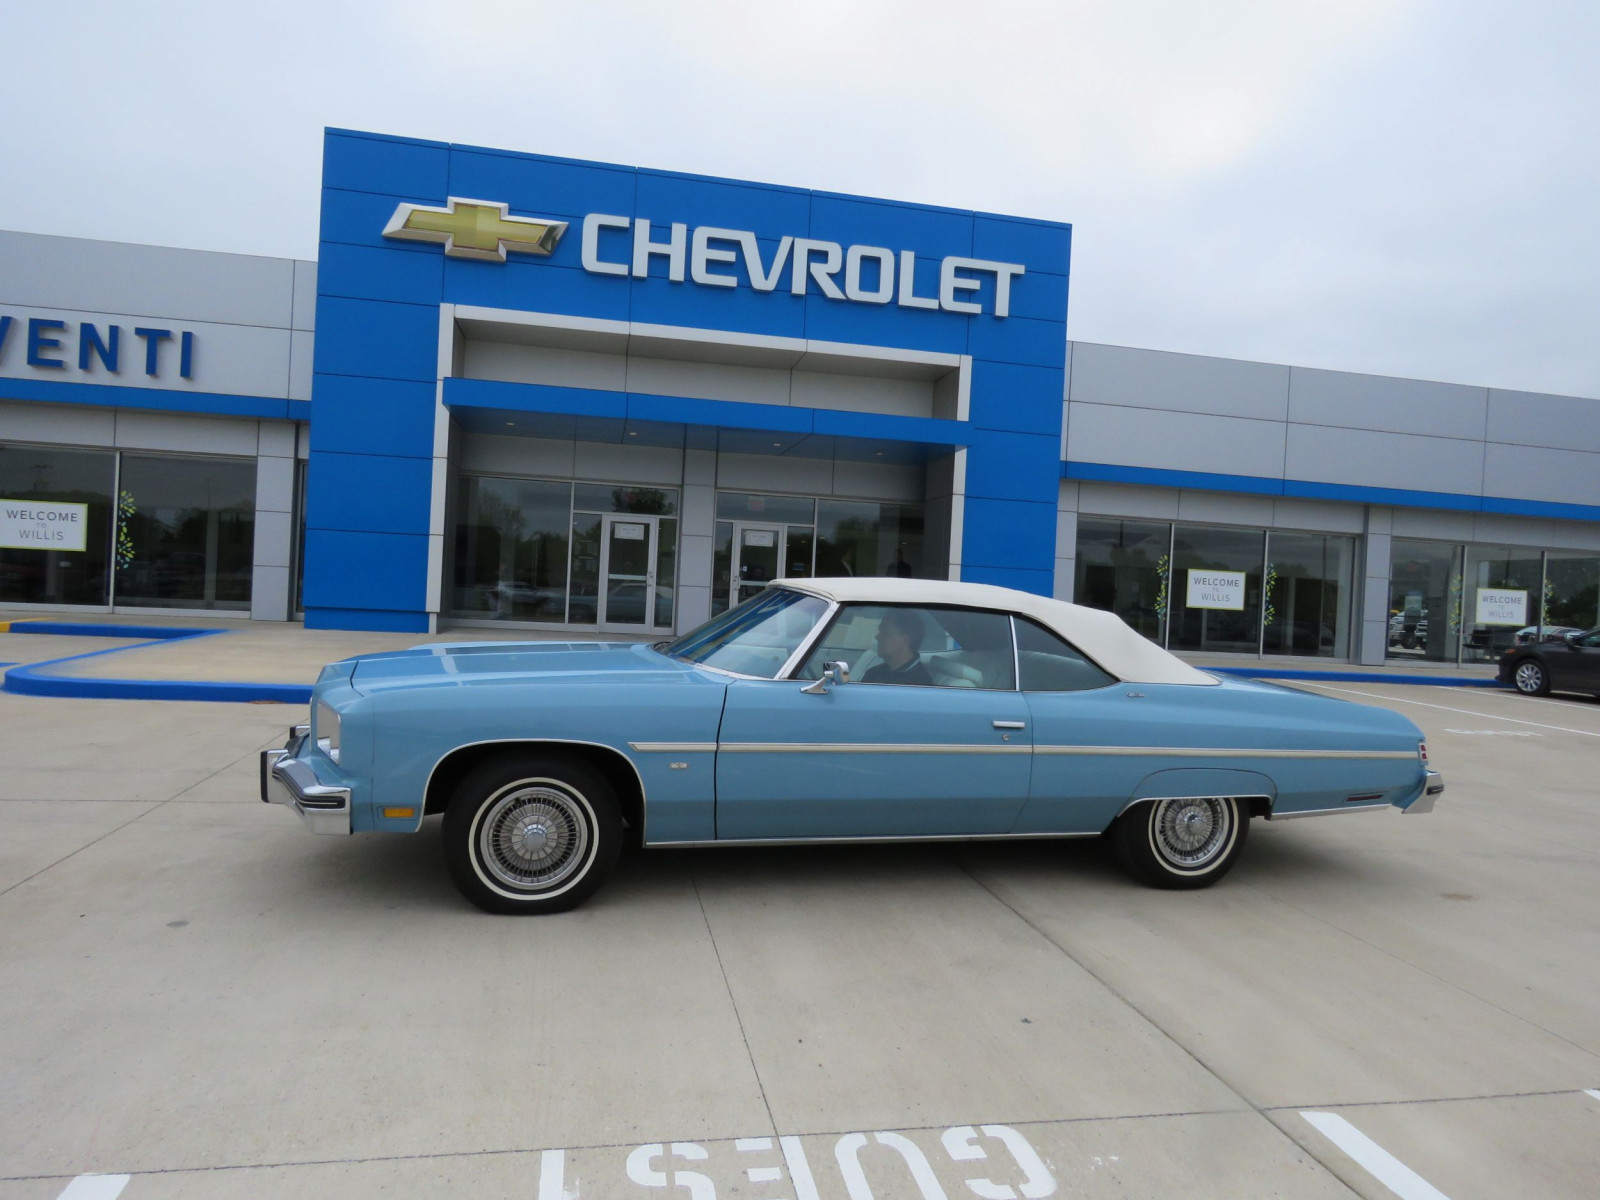 1975 Chevrolet Caprice Classic Convertible - Image 1